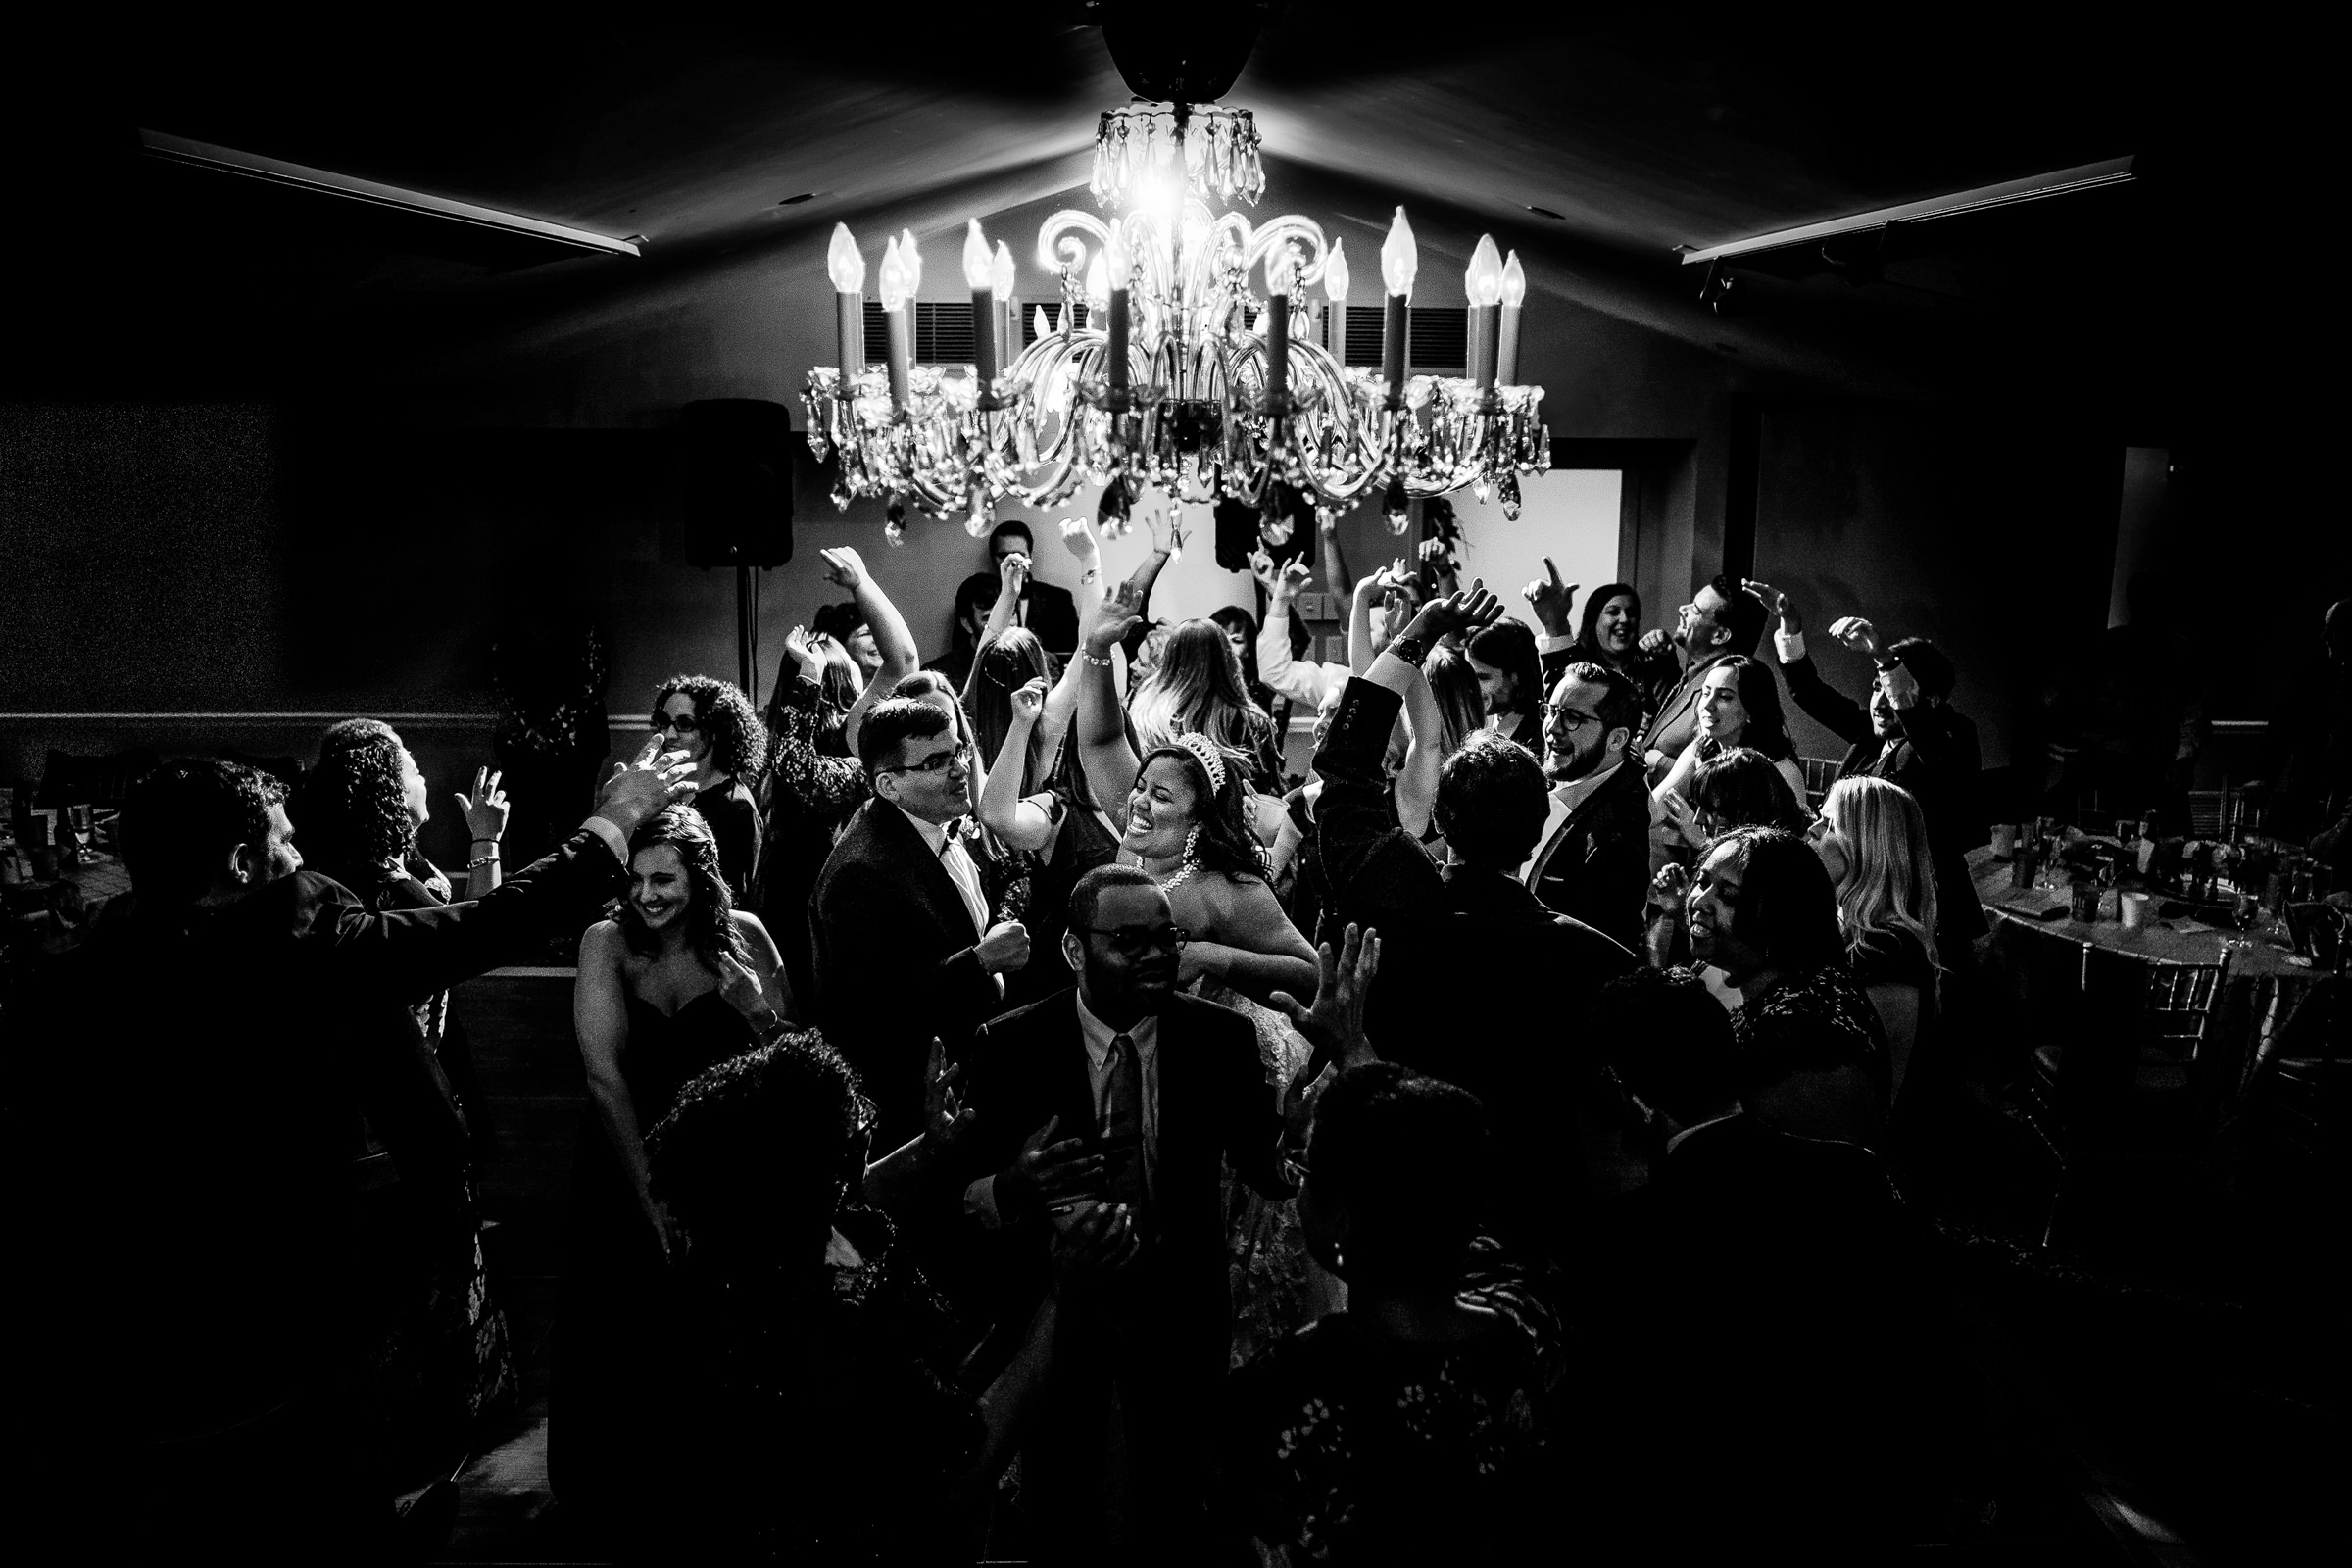 bride-and-groom-party-with-guest-under-chandelier-photo-by-bee-two-sweet